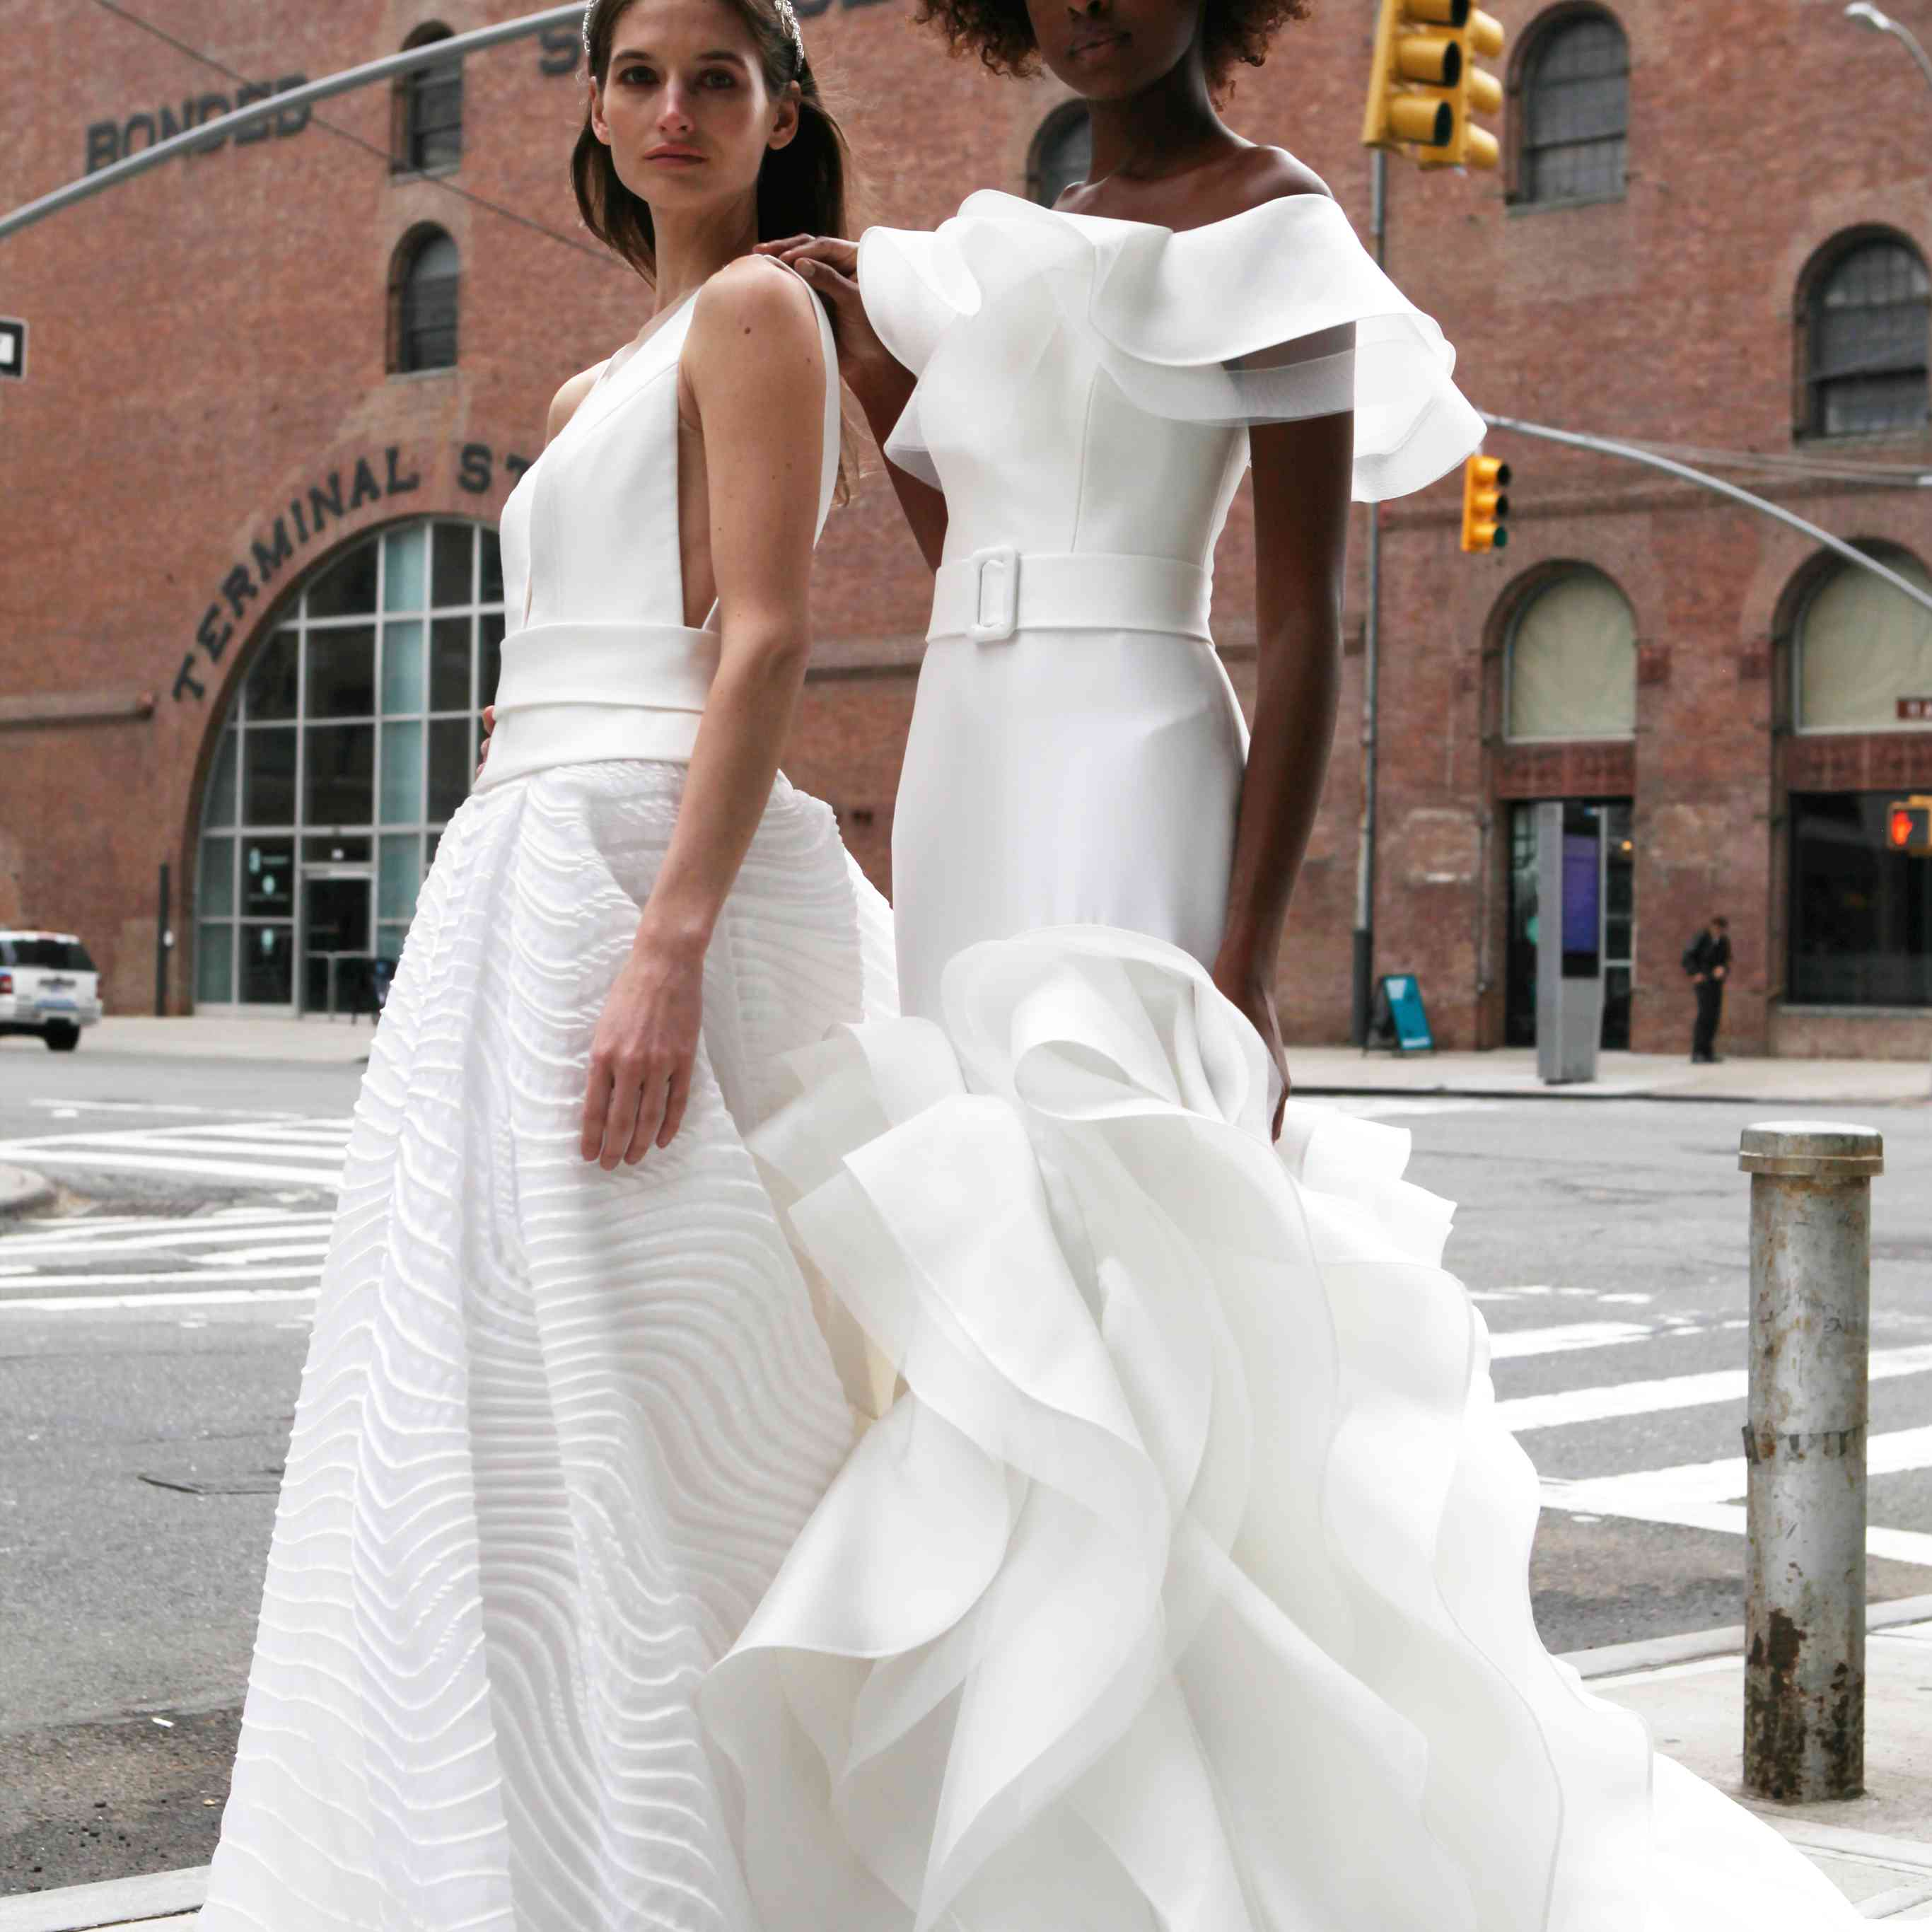 Two models standing on a sidewalk, one in a crepe ballgown (left) and the other in a ruffled fit-and-flare crepe gown